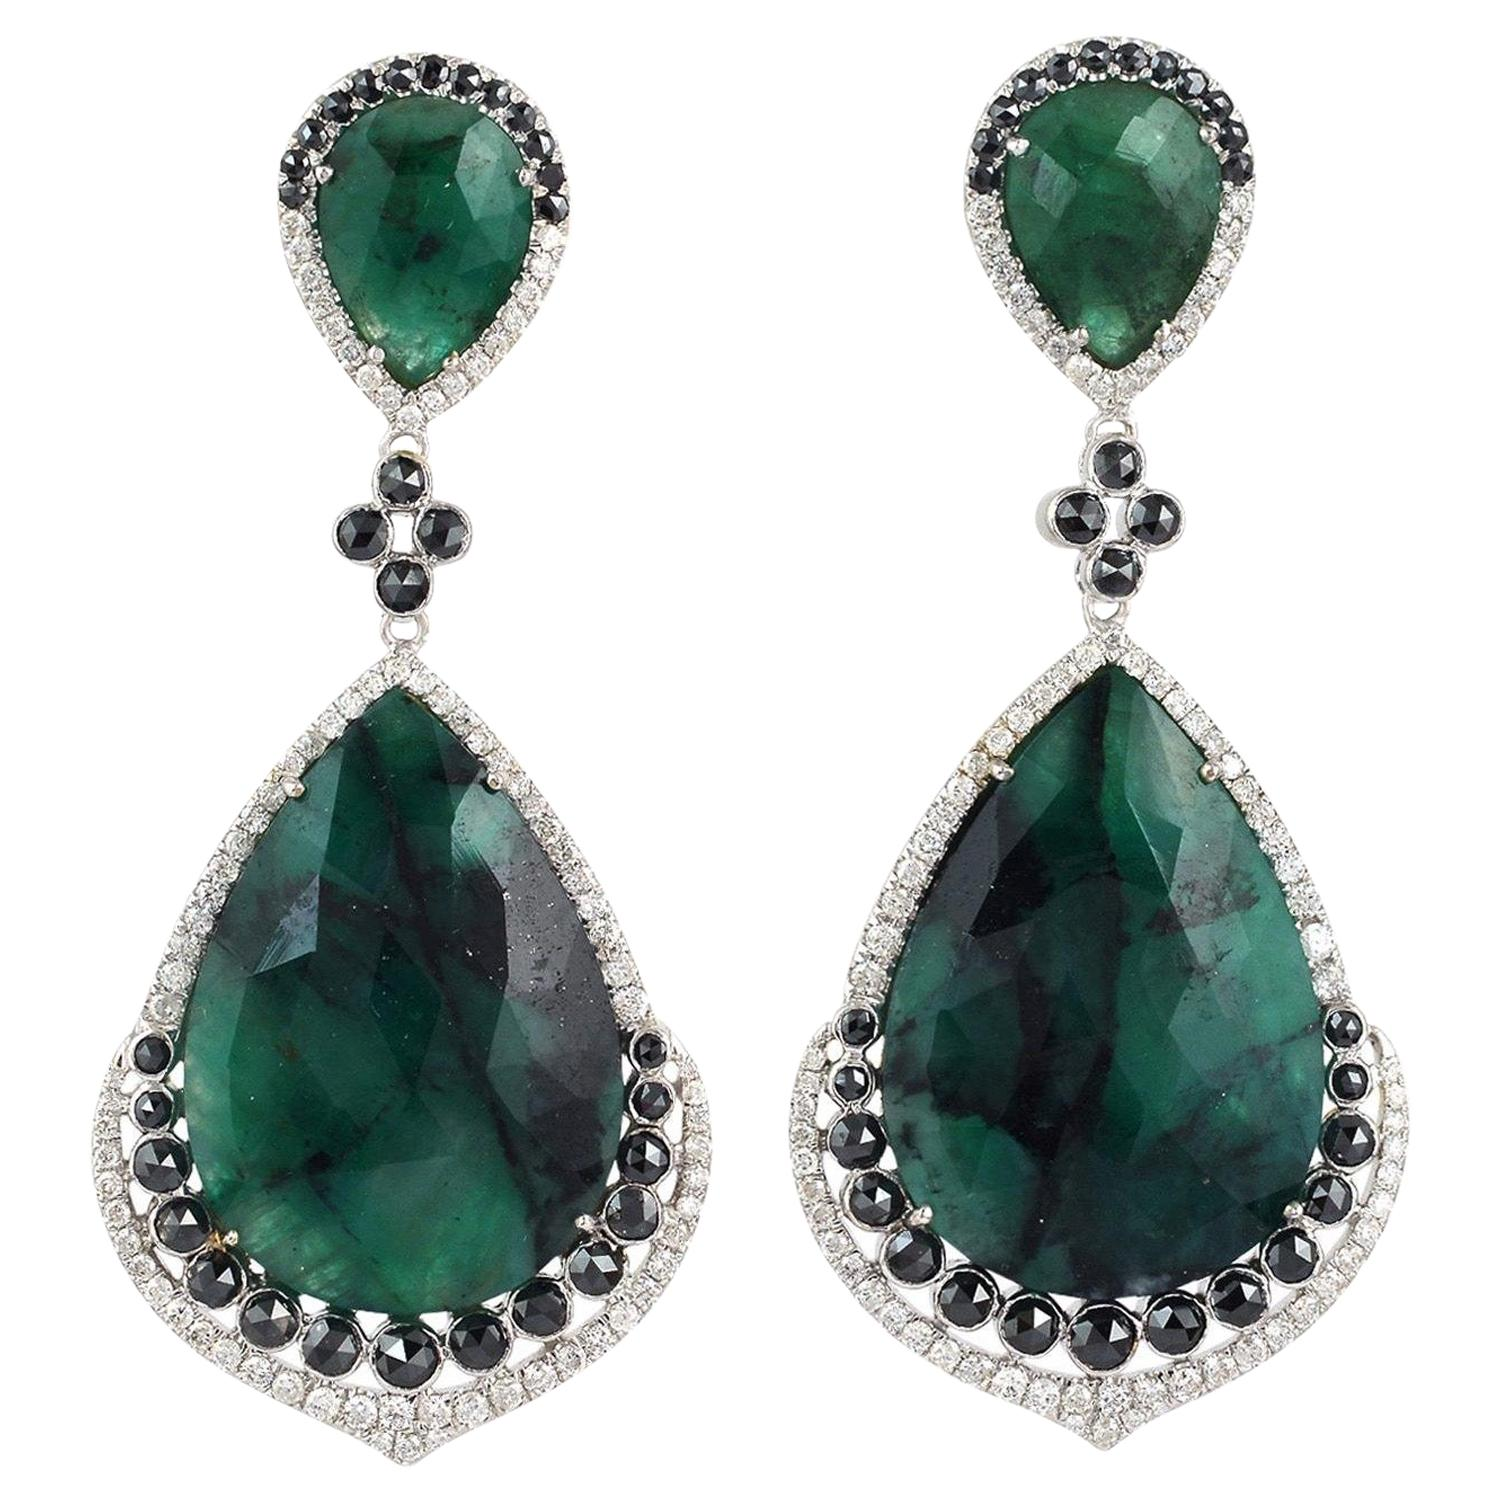 40.4 Carat Emerald Diamond 18 Karat Gold Earrings